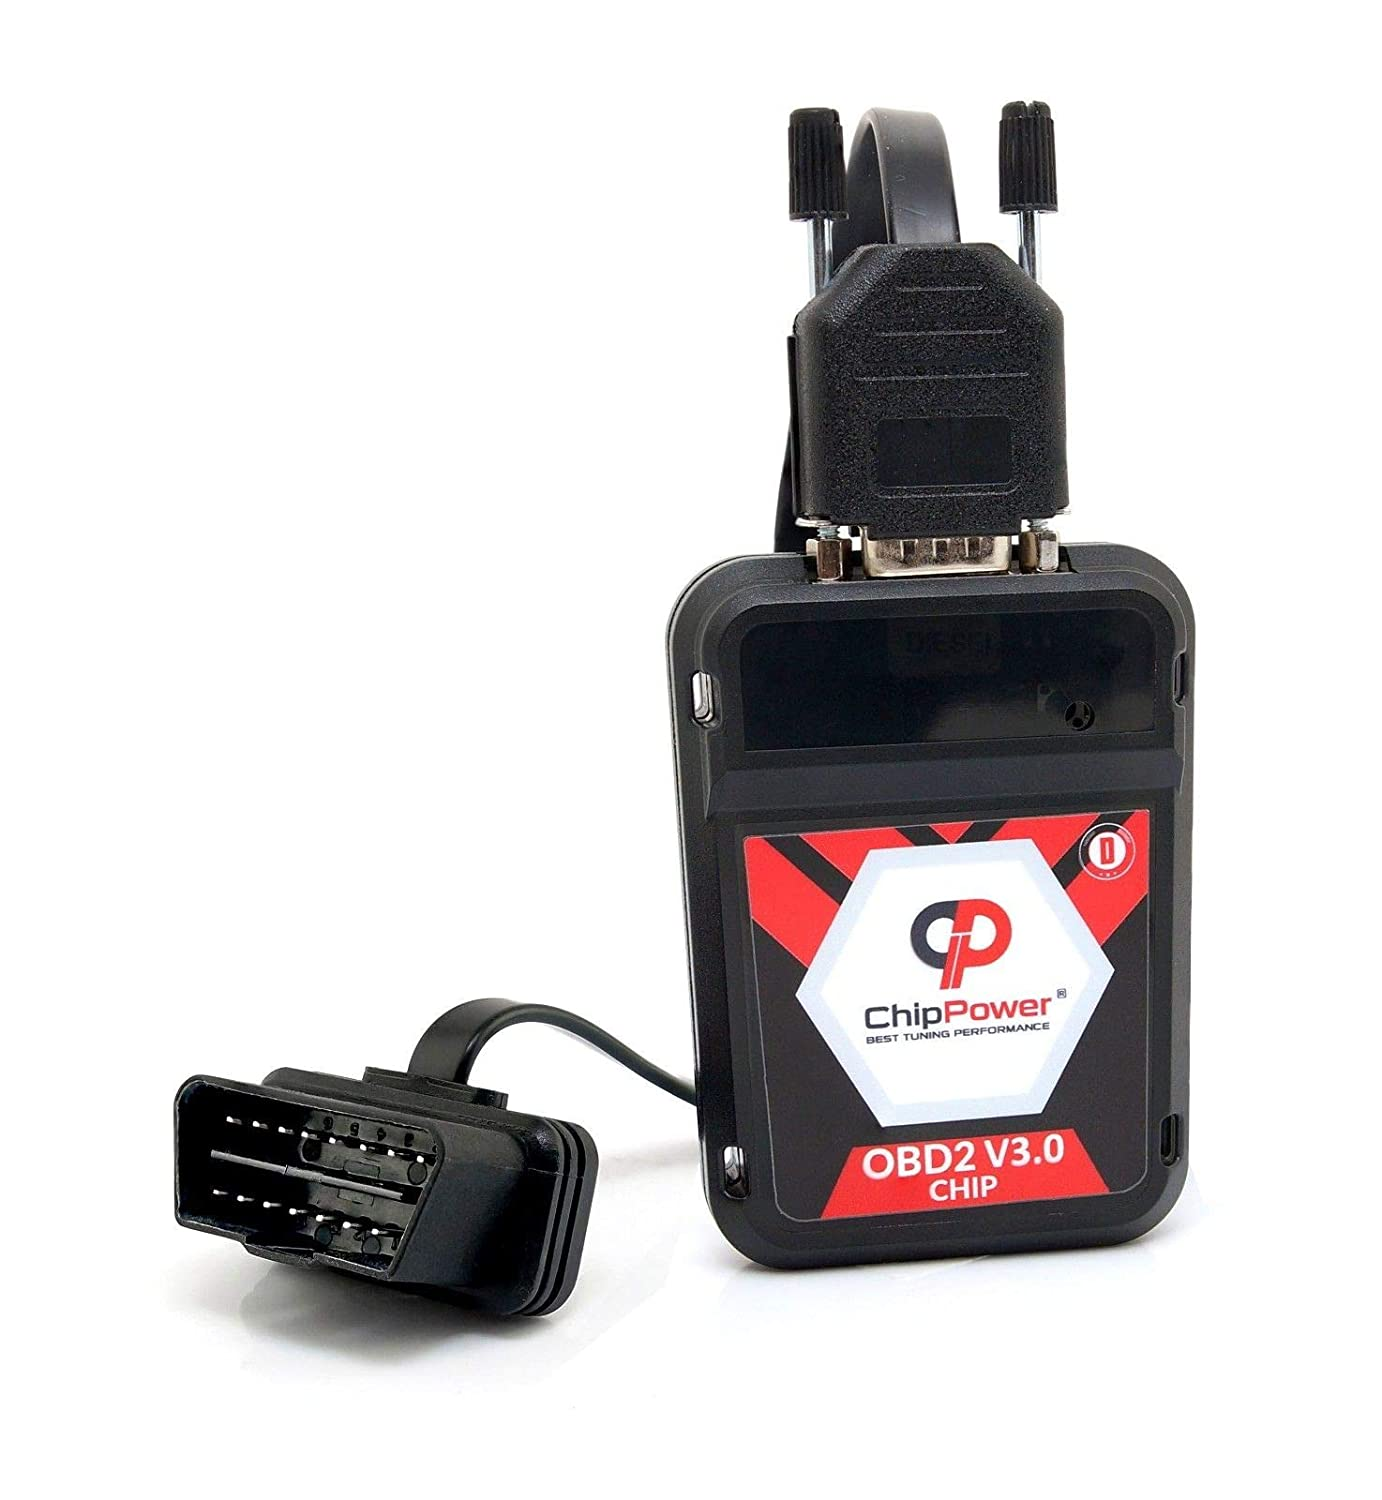 Chip Box Tuning OBD2 v3 for A6 Avant C6 2.0 2.7 3.0 TDI Power Performance Diesel ChipPower